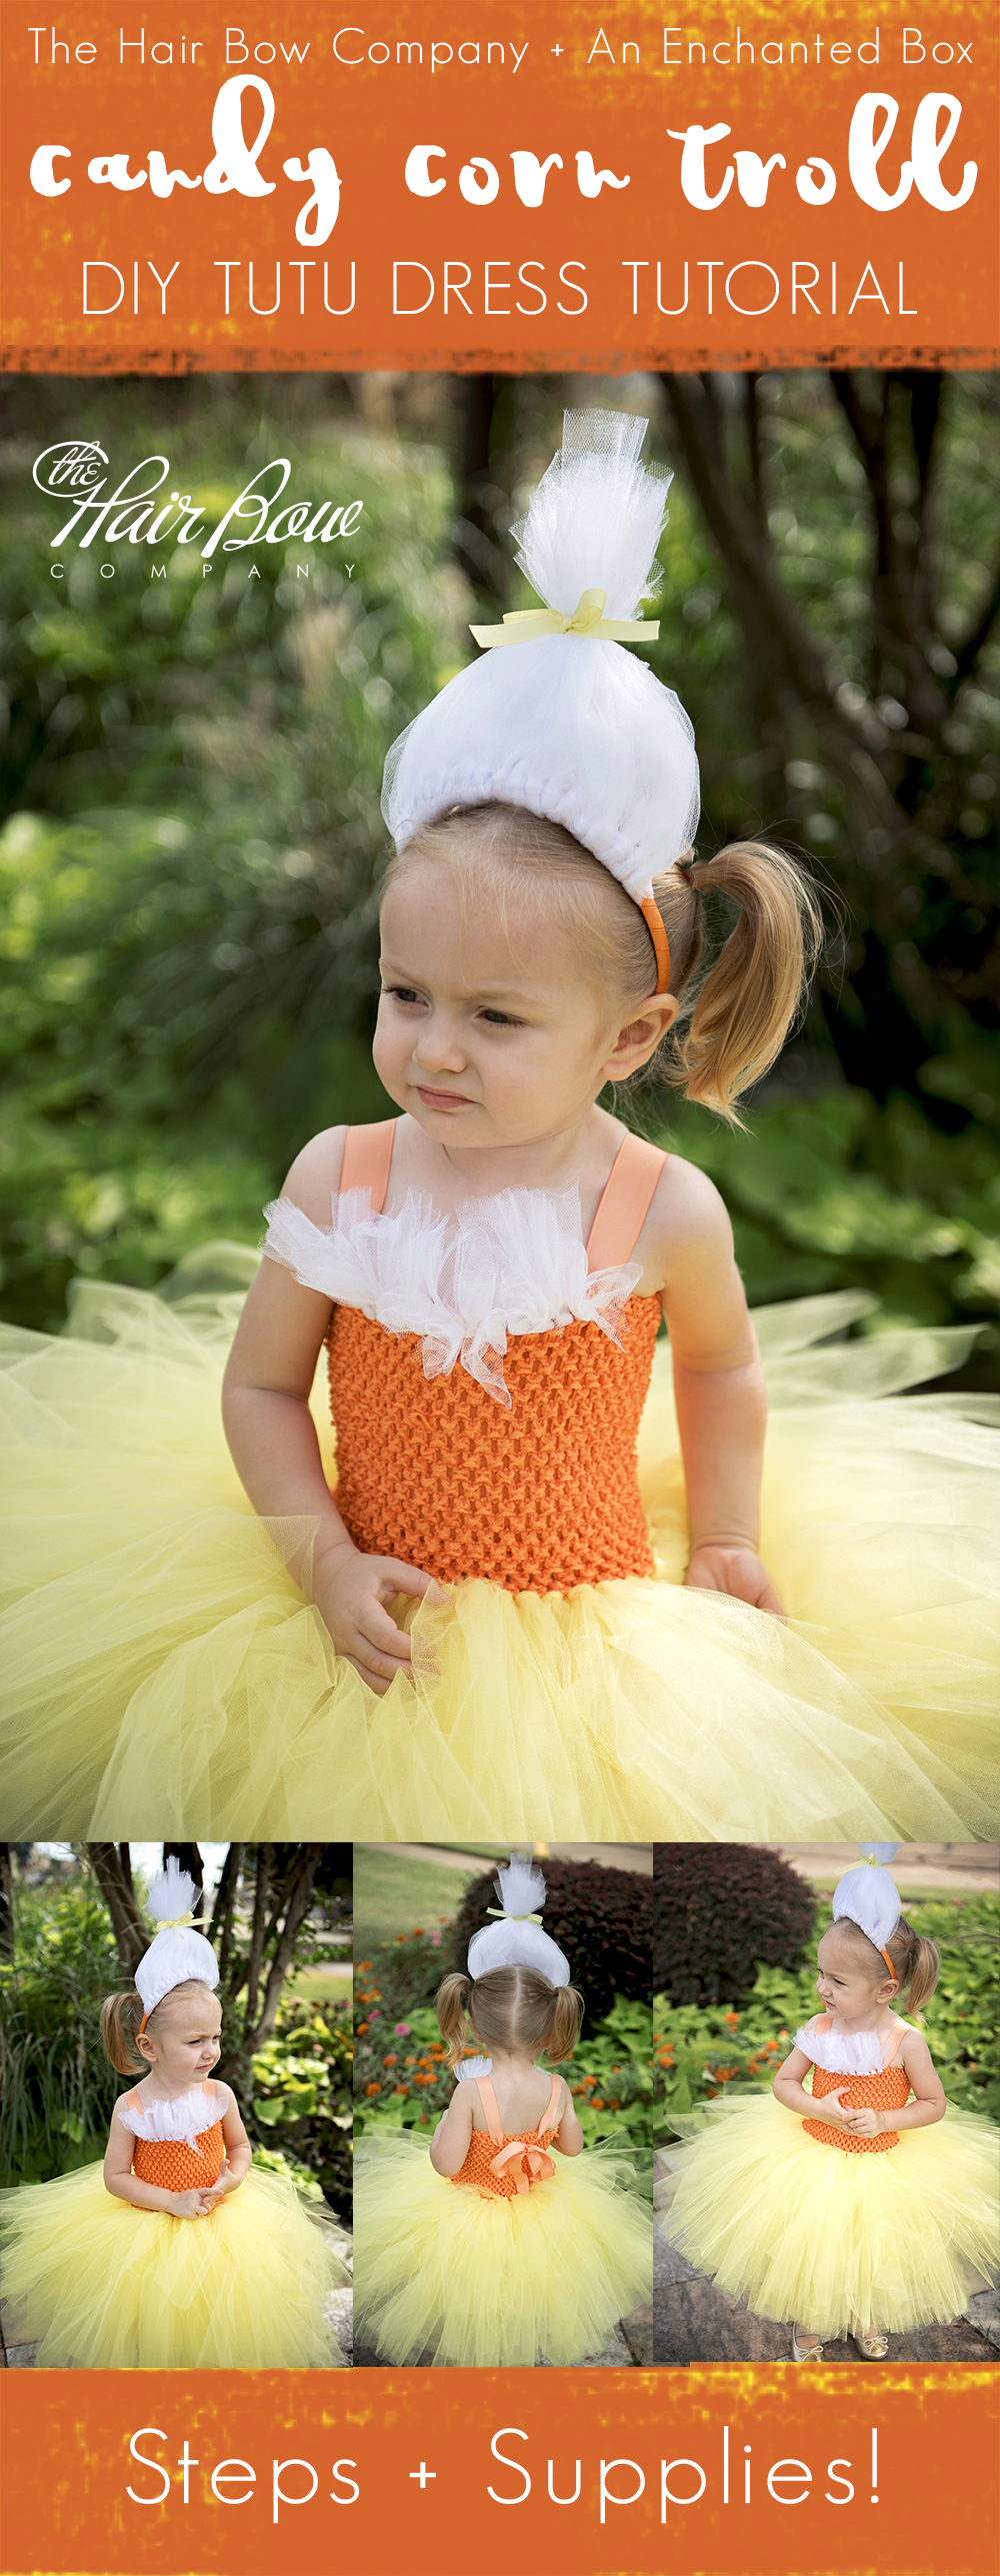 We are so excited to welcome back guest blogger Caitlin of An Enchanted Box on Etsy where you can find her charming tutus u0026 tutu dresses including darling ...  sc 1 st  The Hair Bow Company & Candy Corn Fairy Tutu Dress DIY Tutorial - The Hair Bow Company